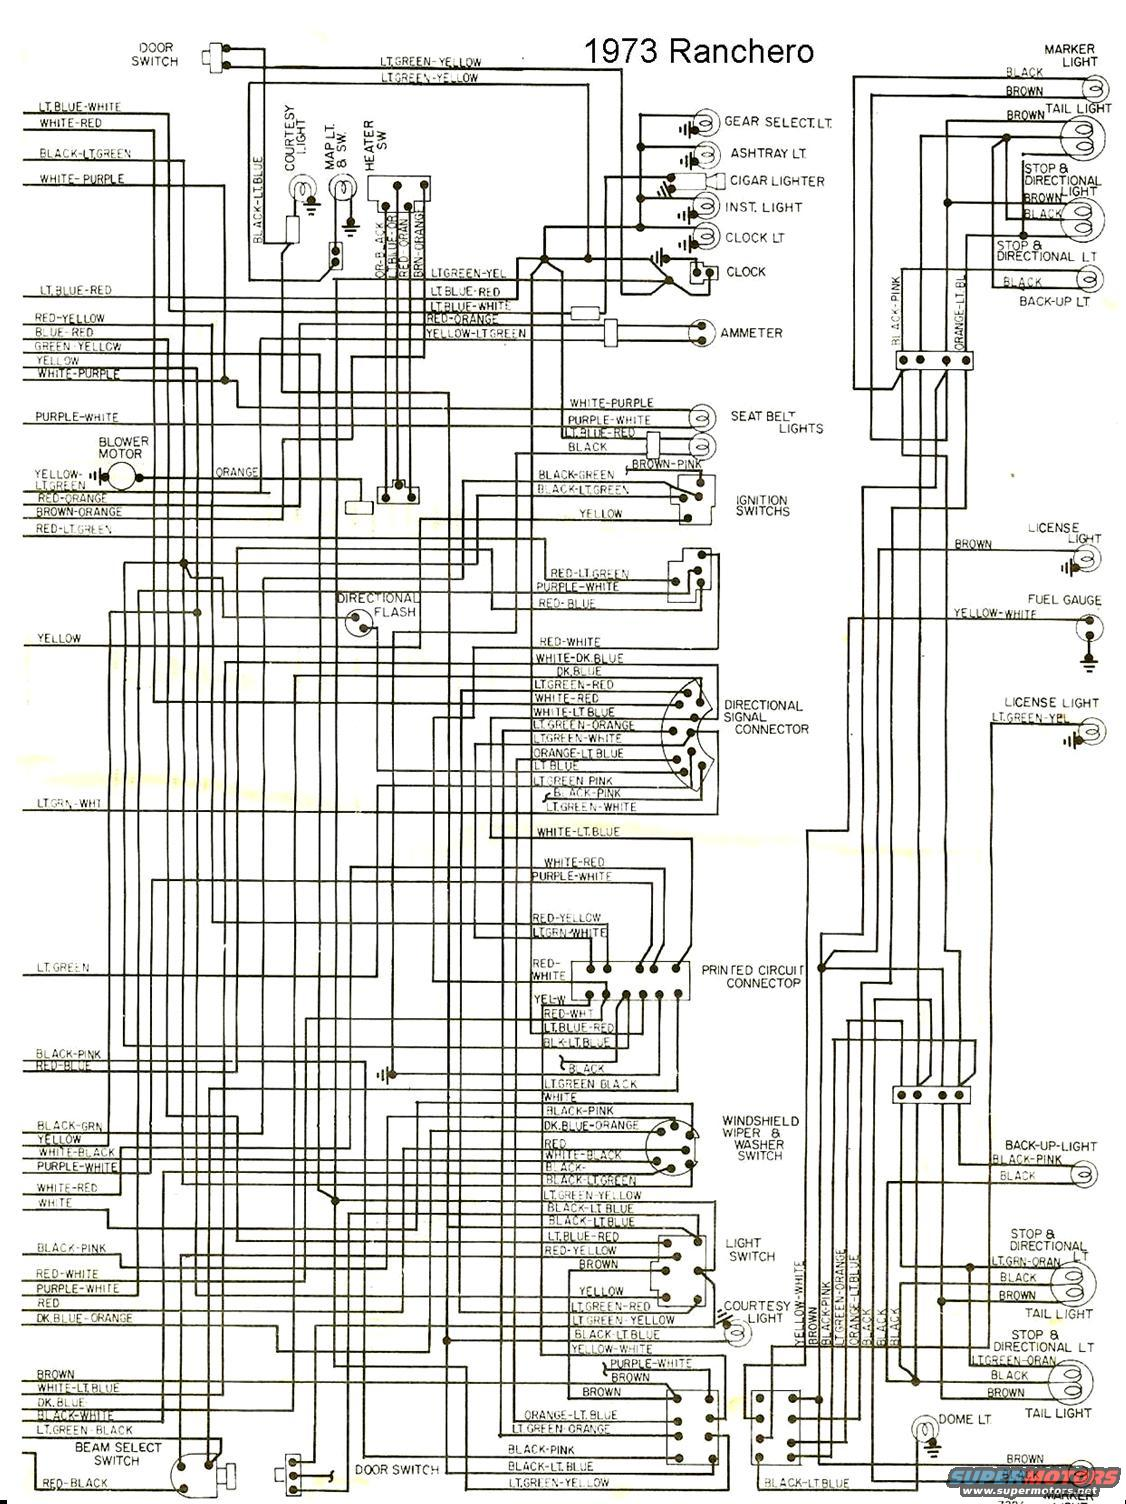 1965 ford ranchero wiring diagram code alarm elite 1100 1973 the site share images